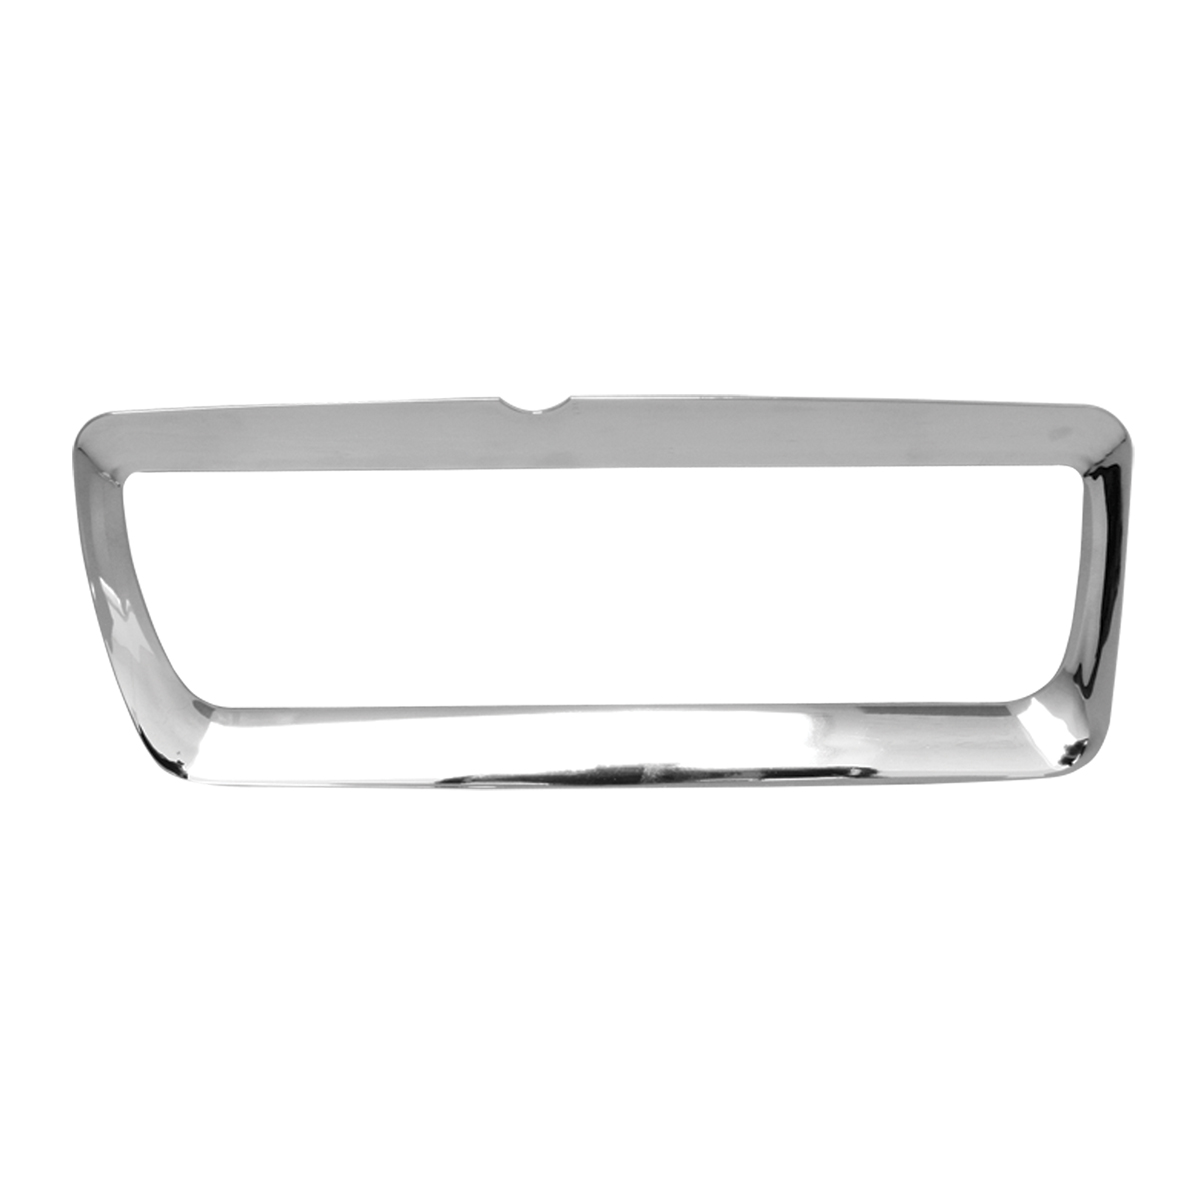 67849 Header Pocket Bezel Trim for Driver Side Kenworth W&T